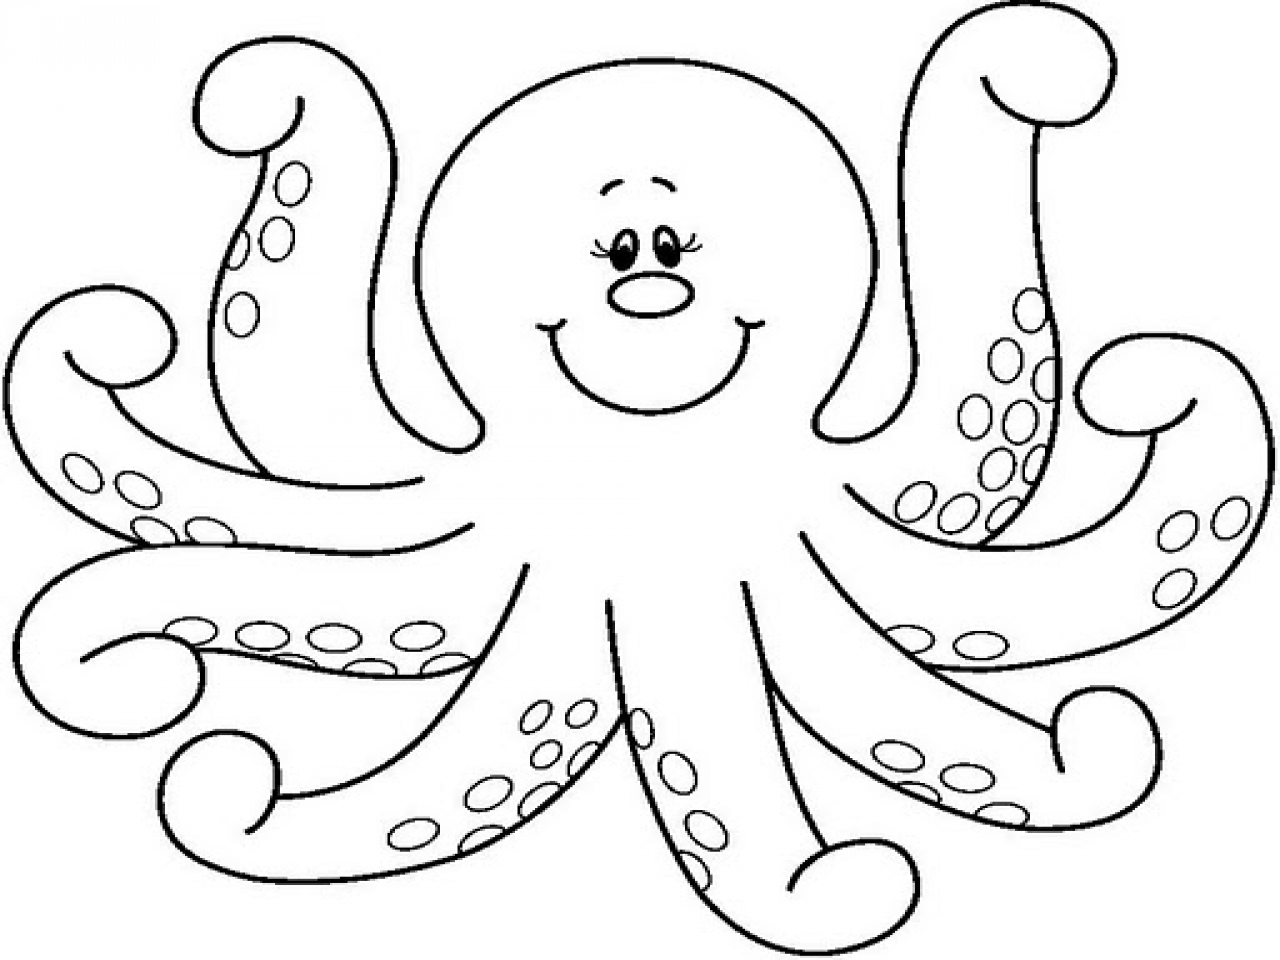 Octopus Coloring Template, Octopus Clip Art Black And White.